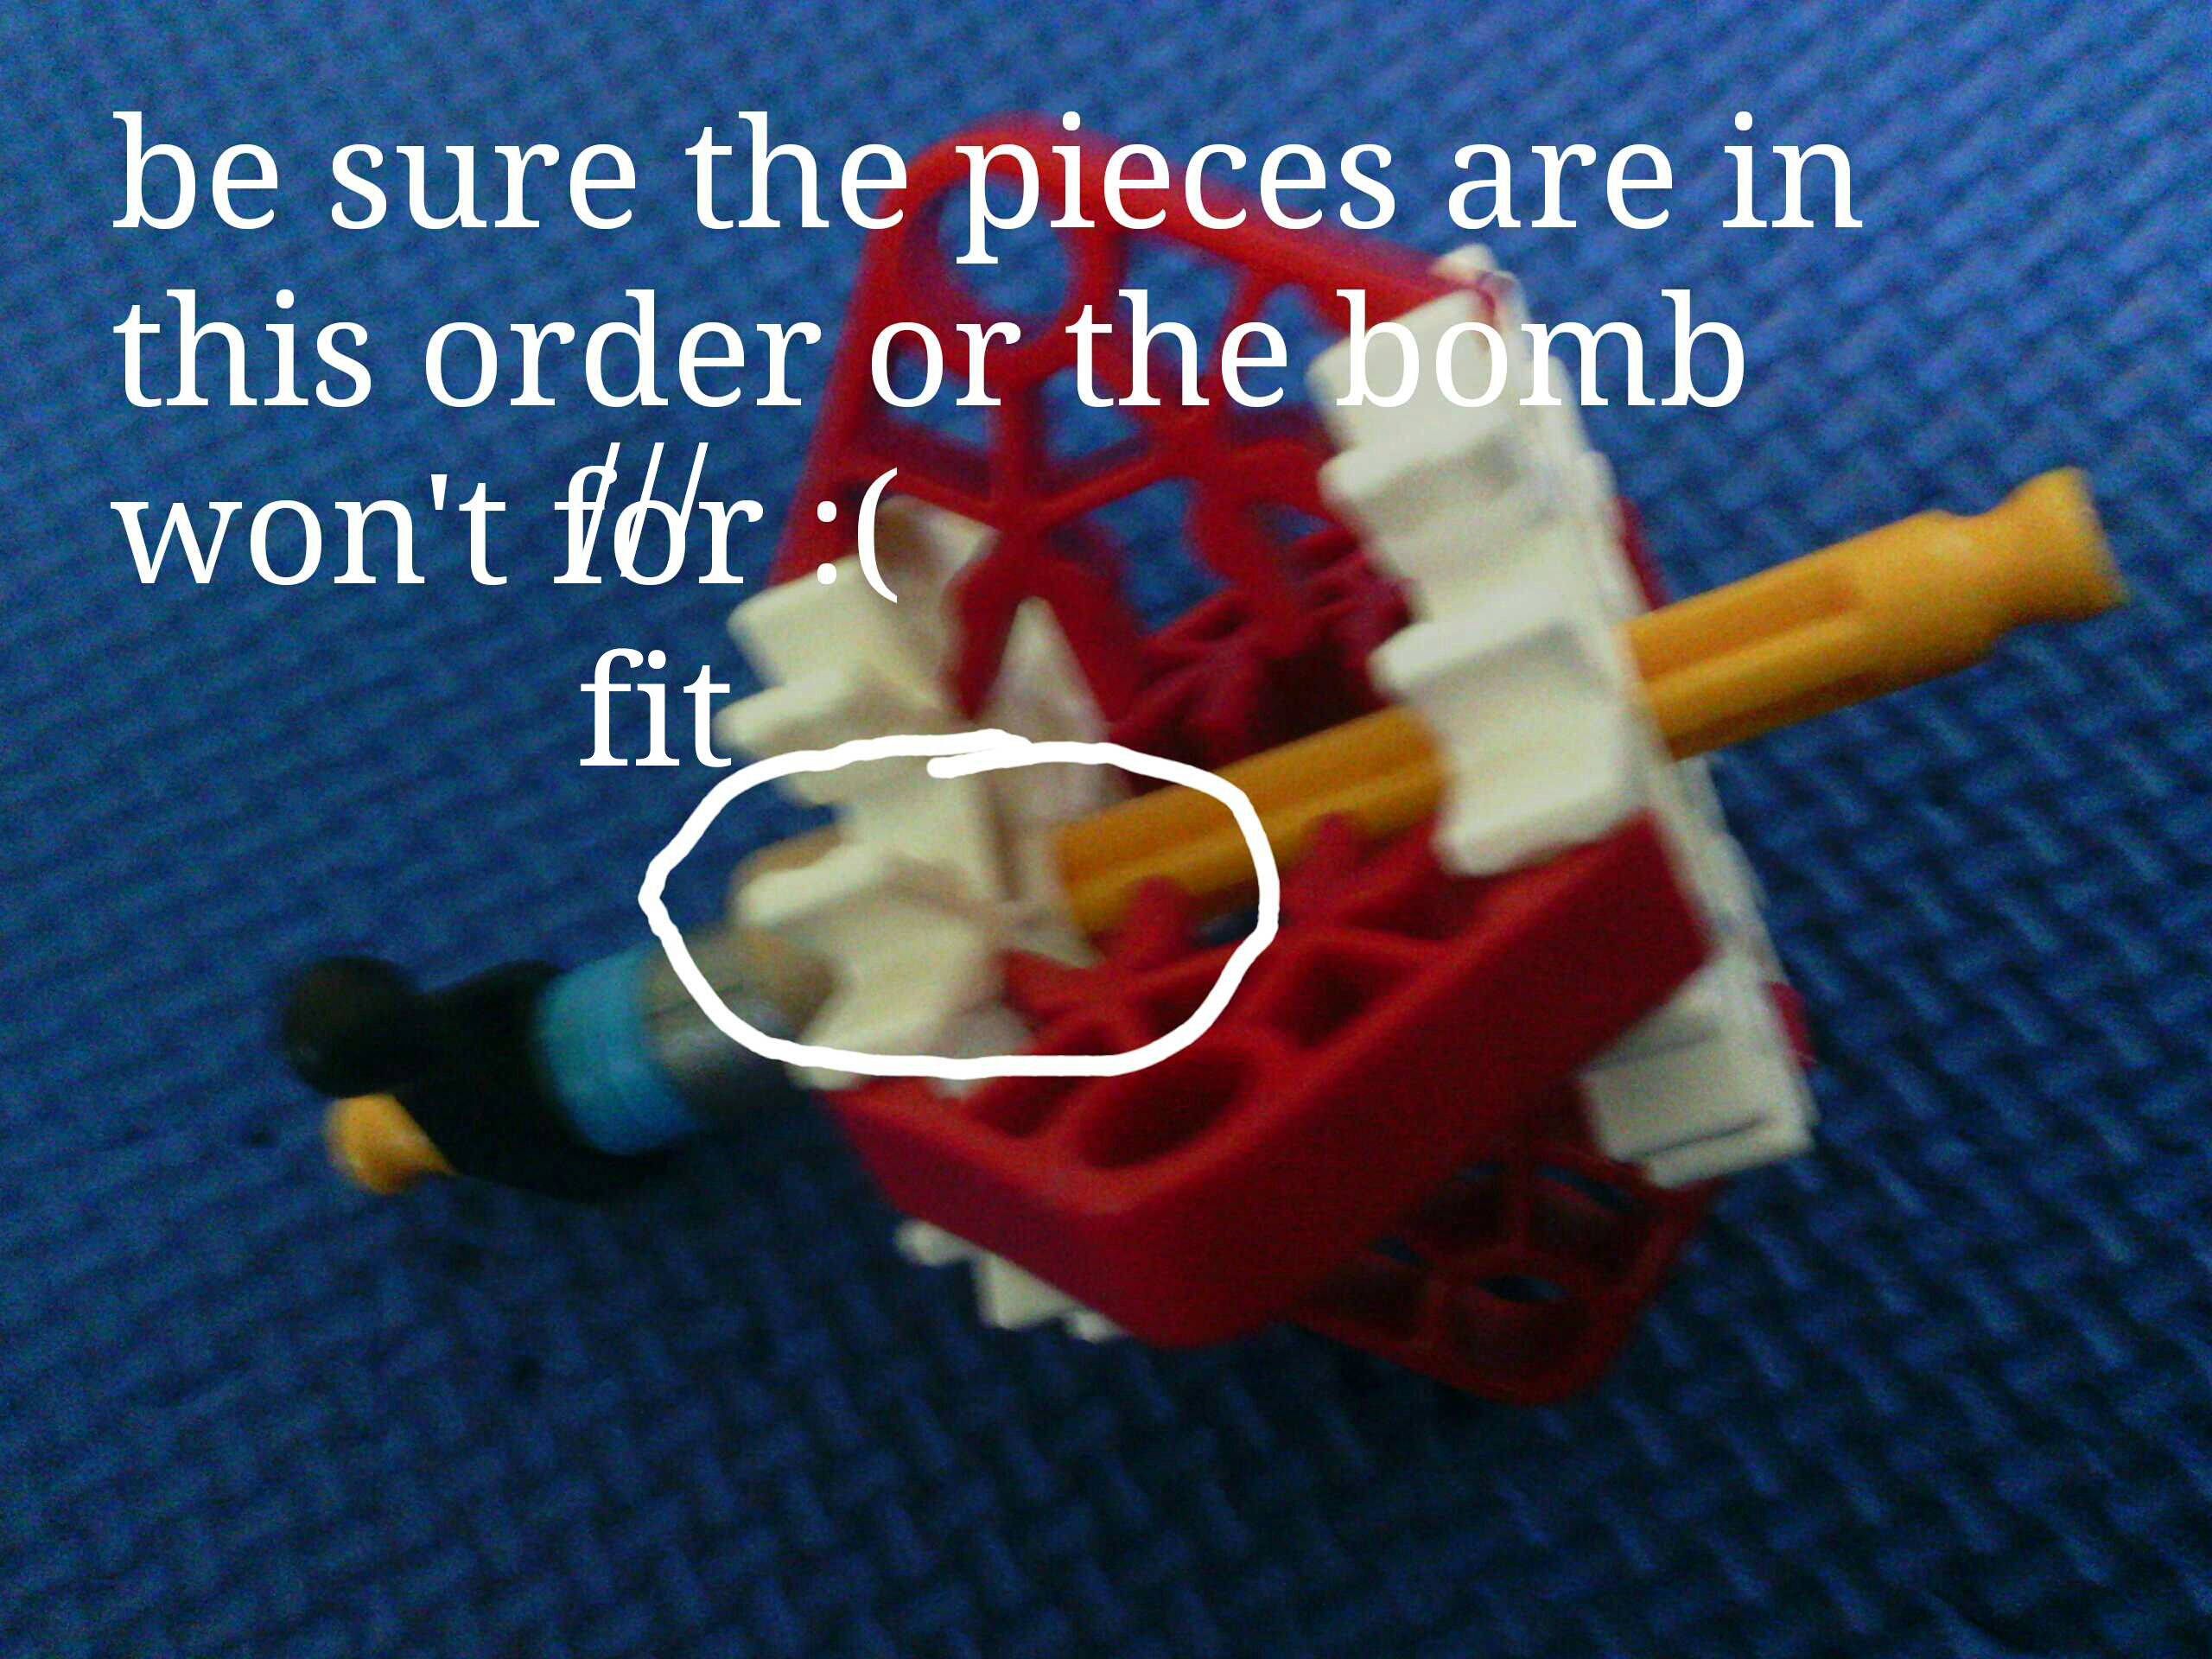 Picture of THE BOMBS!?!?!?!!!!!!!!!!!